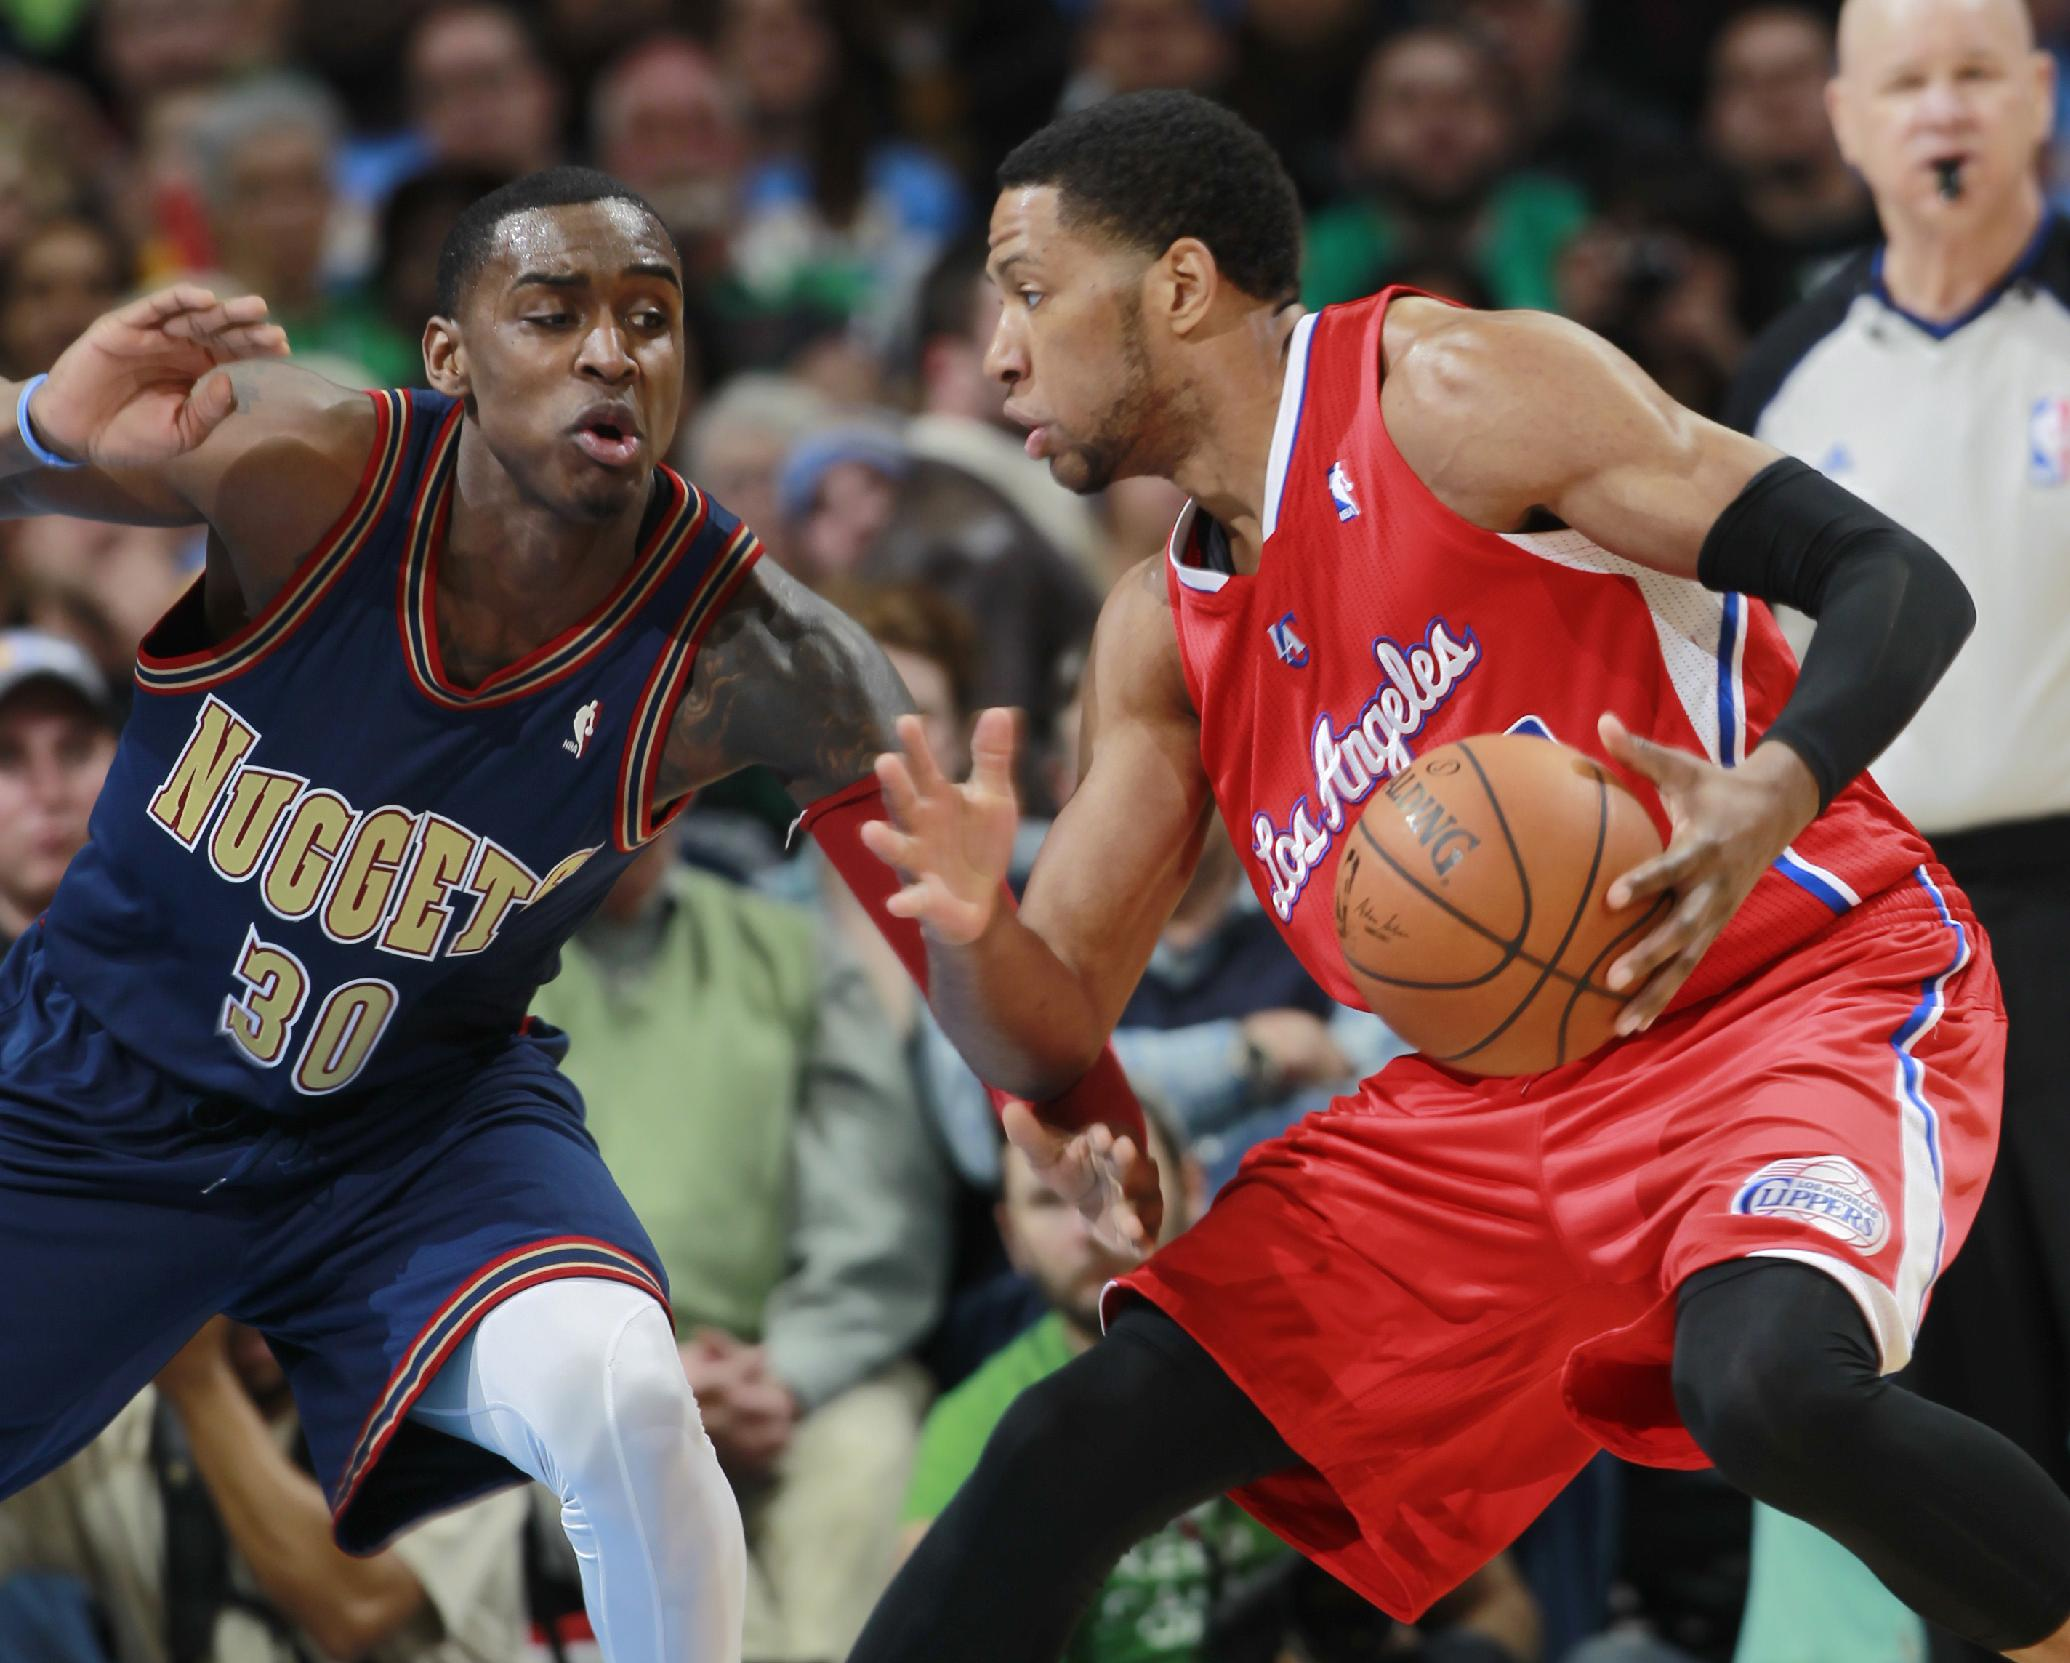 Los Angeles Clippers forward Danny Granger, right, works ball inside as Denver Nuggets forward Quincy Miller covers in the fourth quarter of the Nuggets' 110-100 victory in an NBA basketball game in Denver on Monday, March 17, 2014